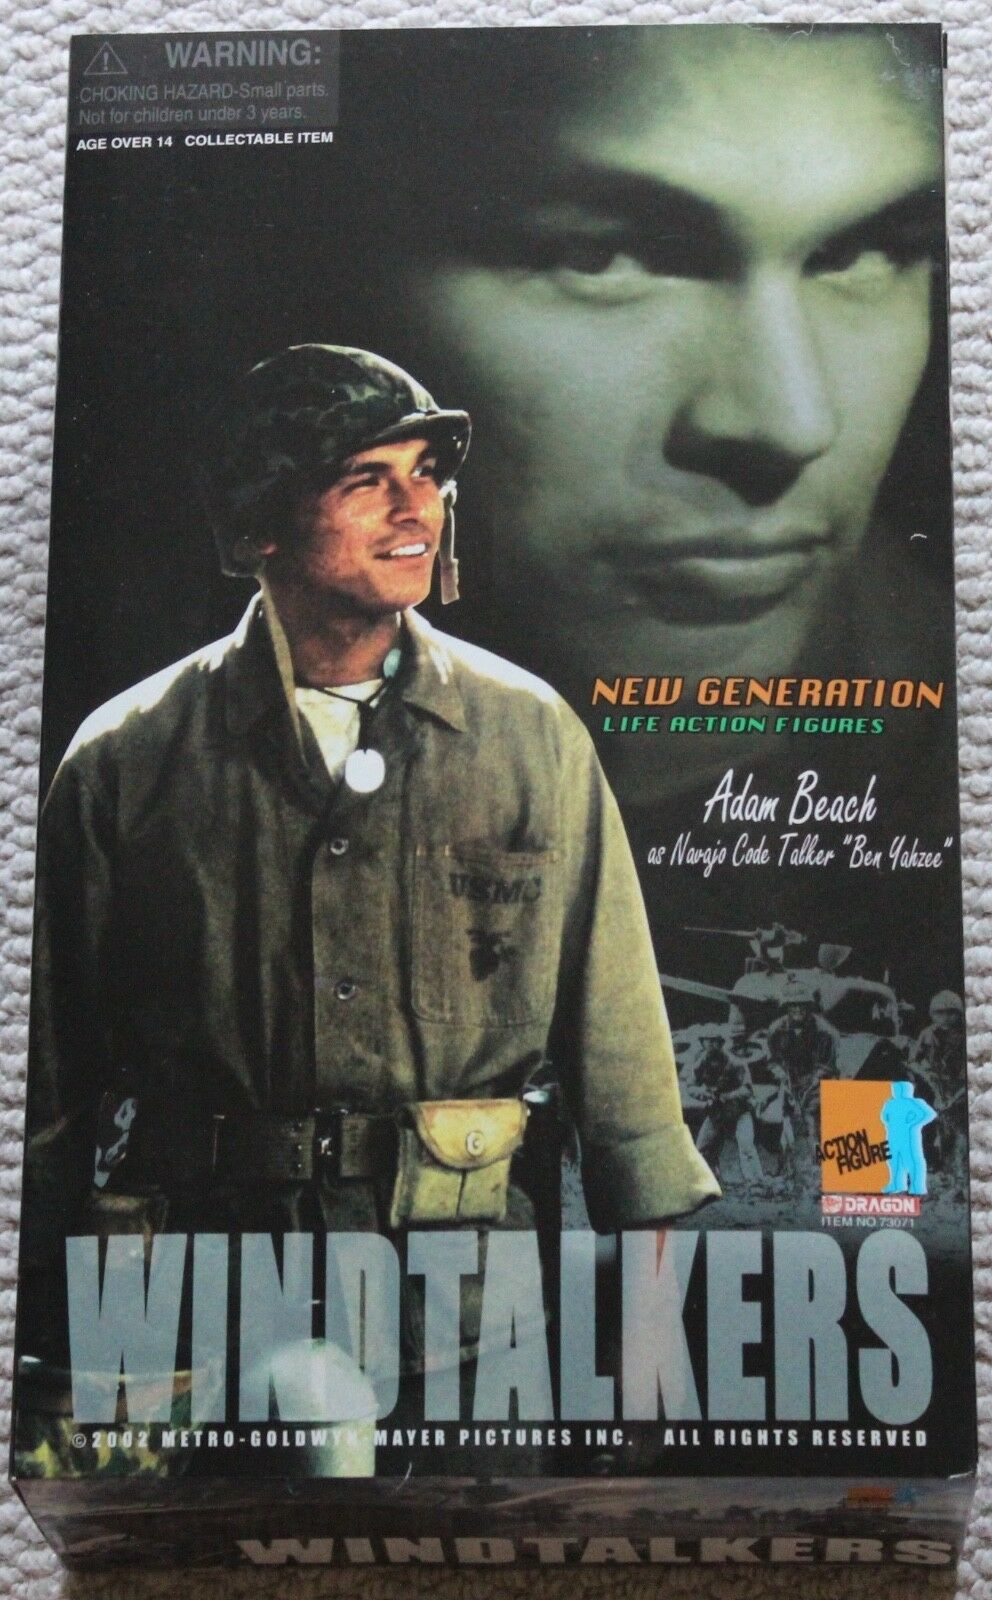 Dragon action 1/6 figure us wind talkers adam beach 1/6 action 12'' hot toy ww11 did acd73a